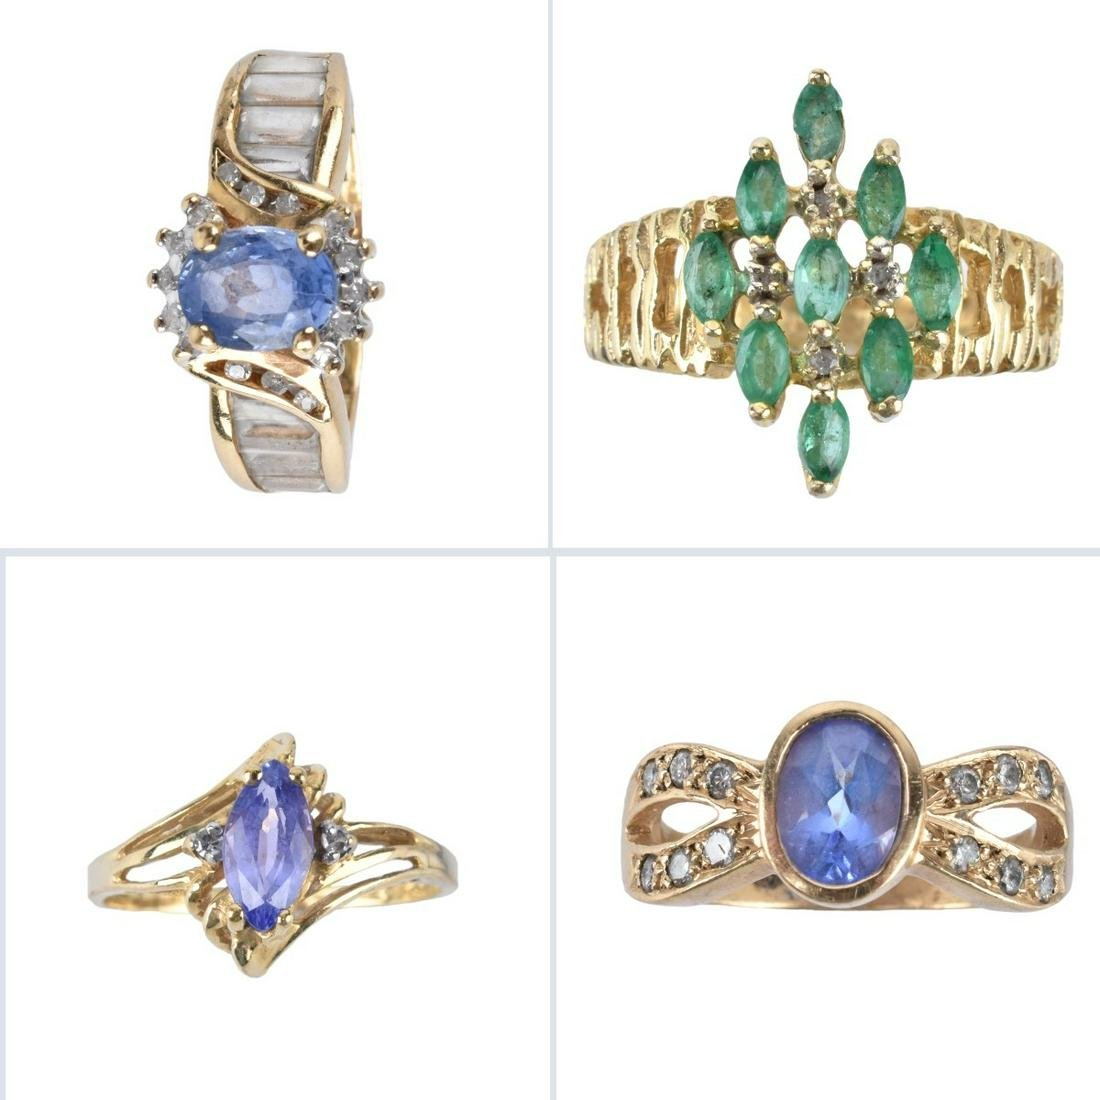 Four Vintage Gold and Gemstone Rings